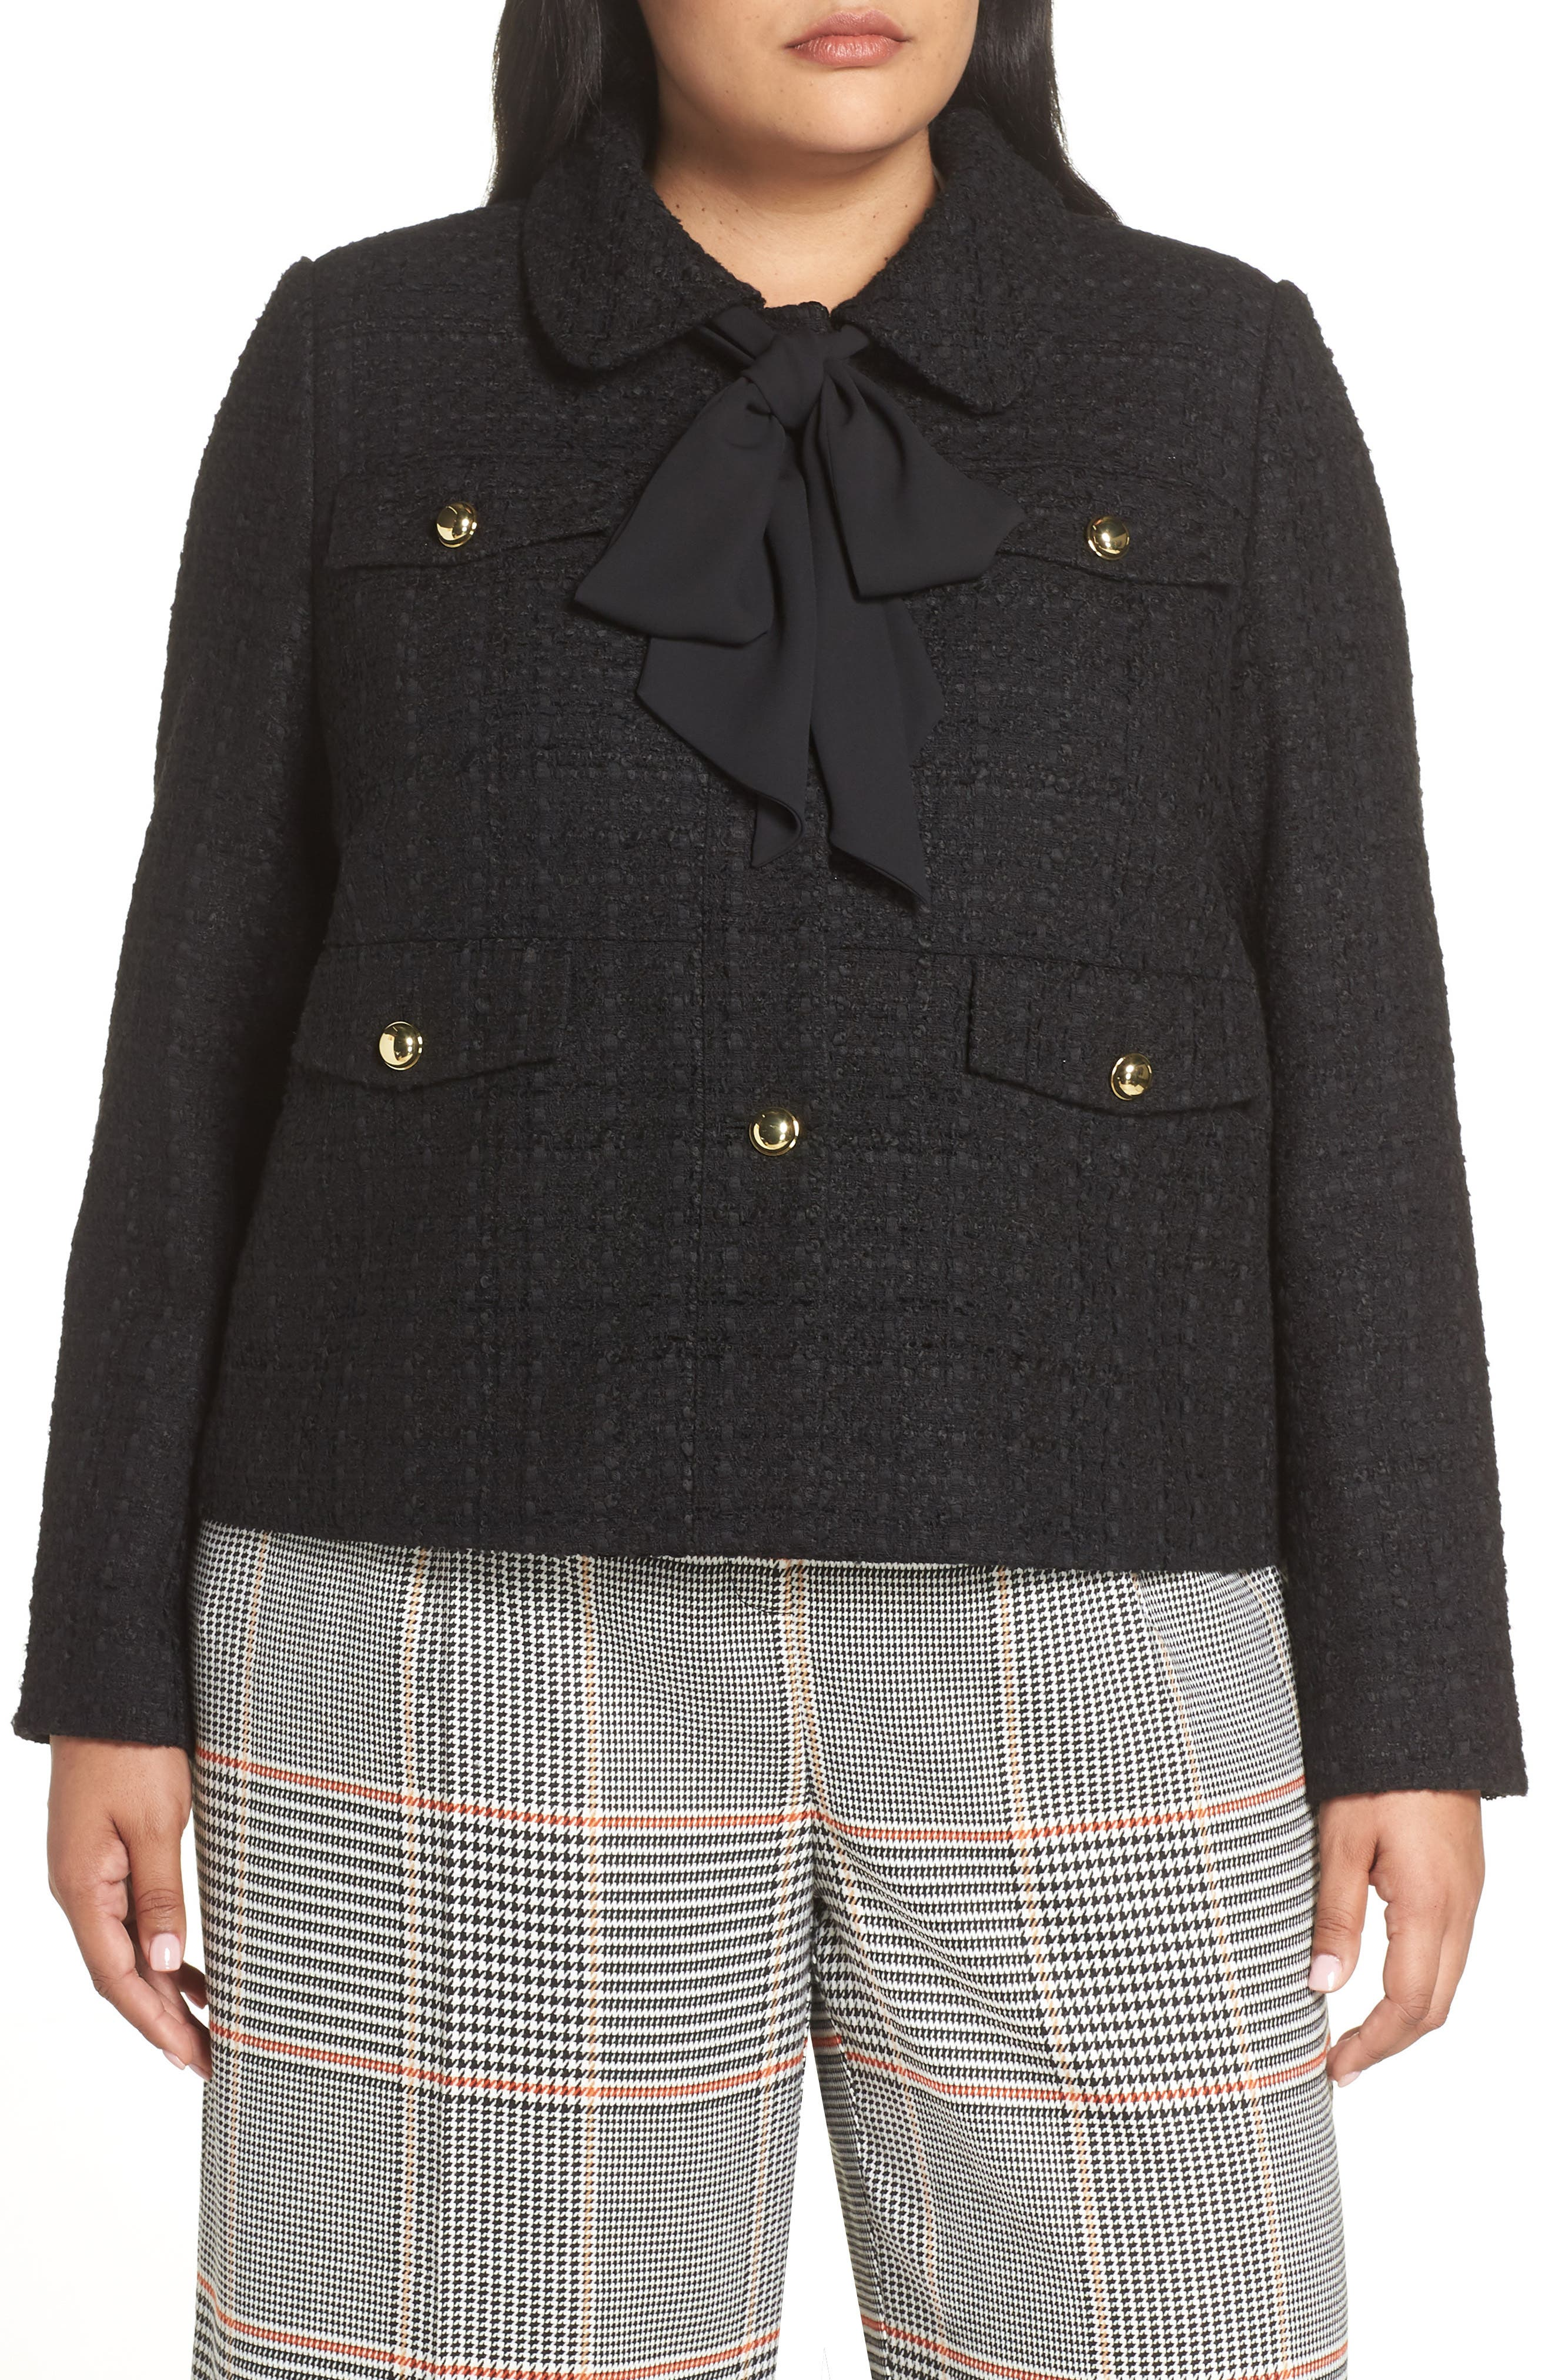 x Atlantic-Pacific Bow Detail Tweed Jacket,                         Main,                         color, 001